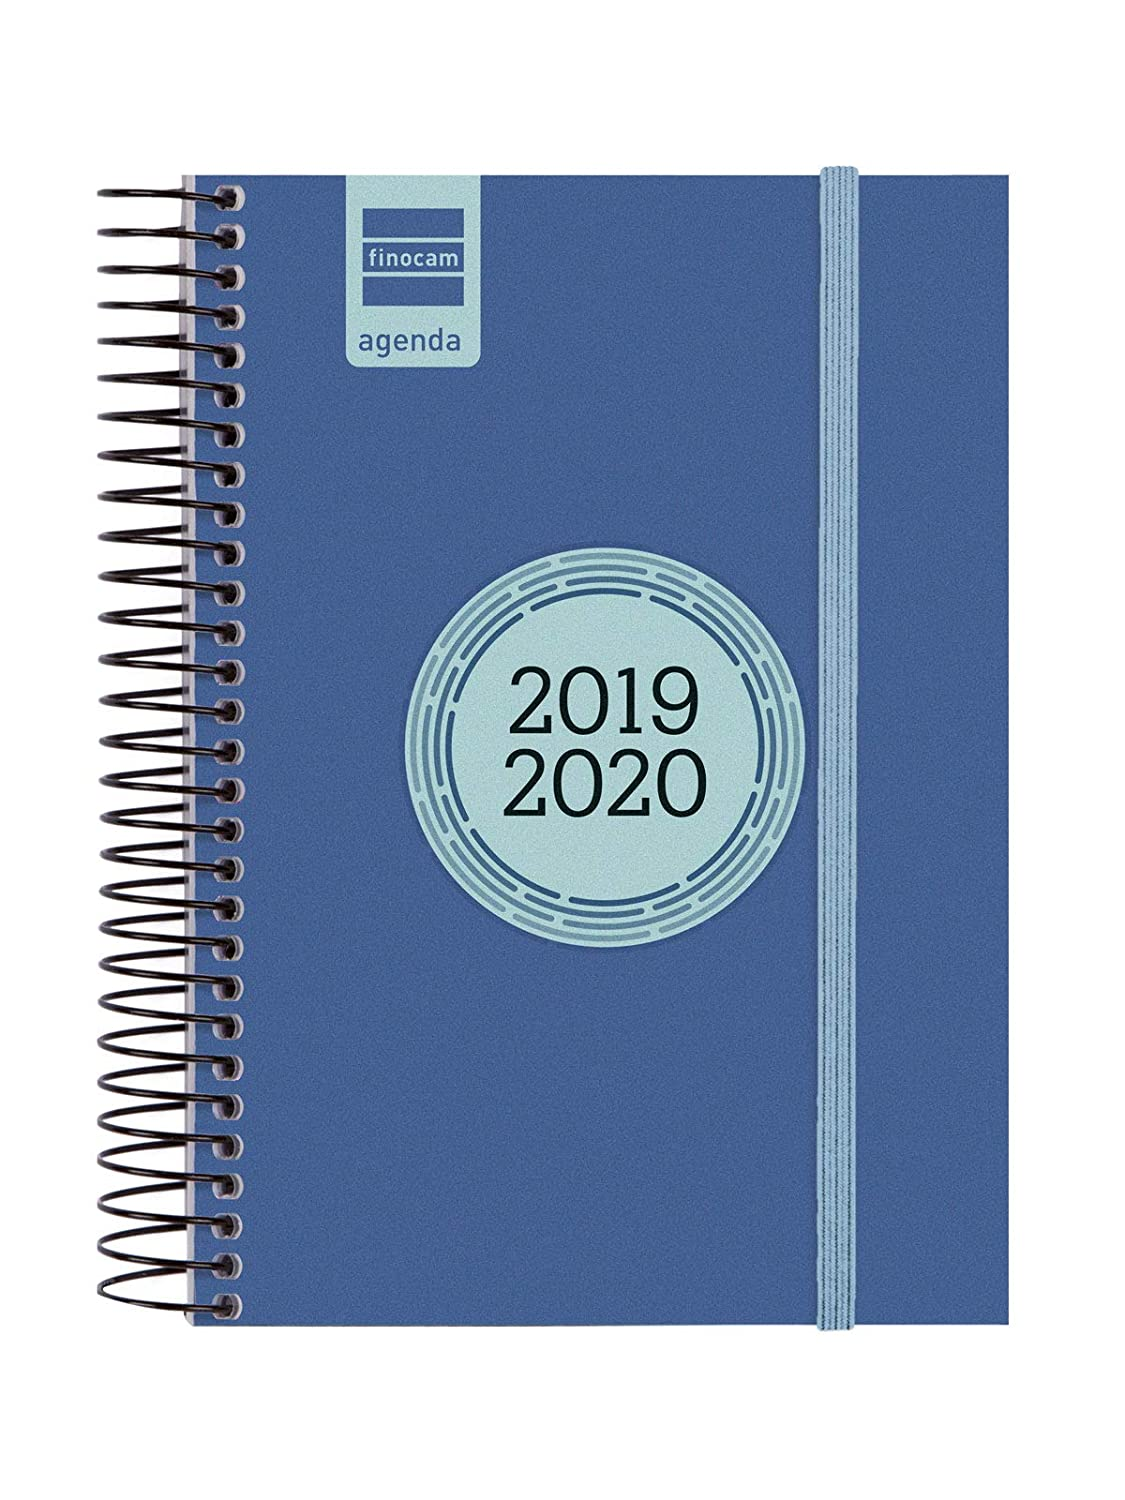 Amazon.com : Finocam 2019-2020 Diary 1 Day Page Catalan ...